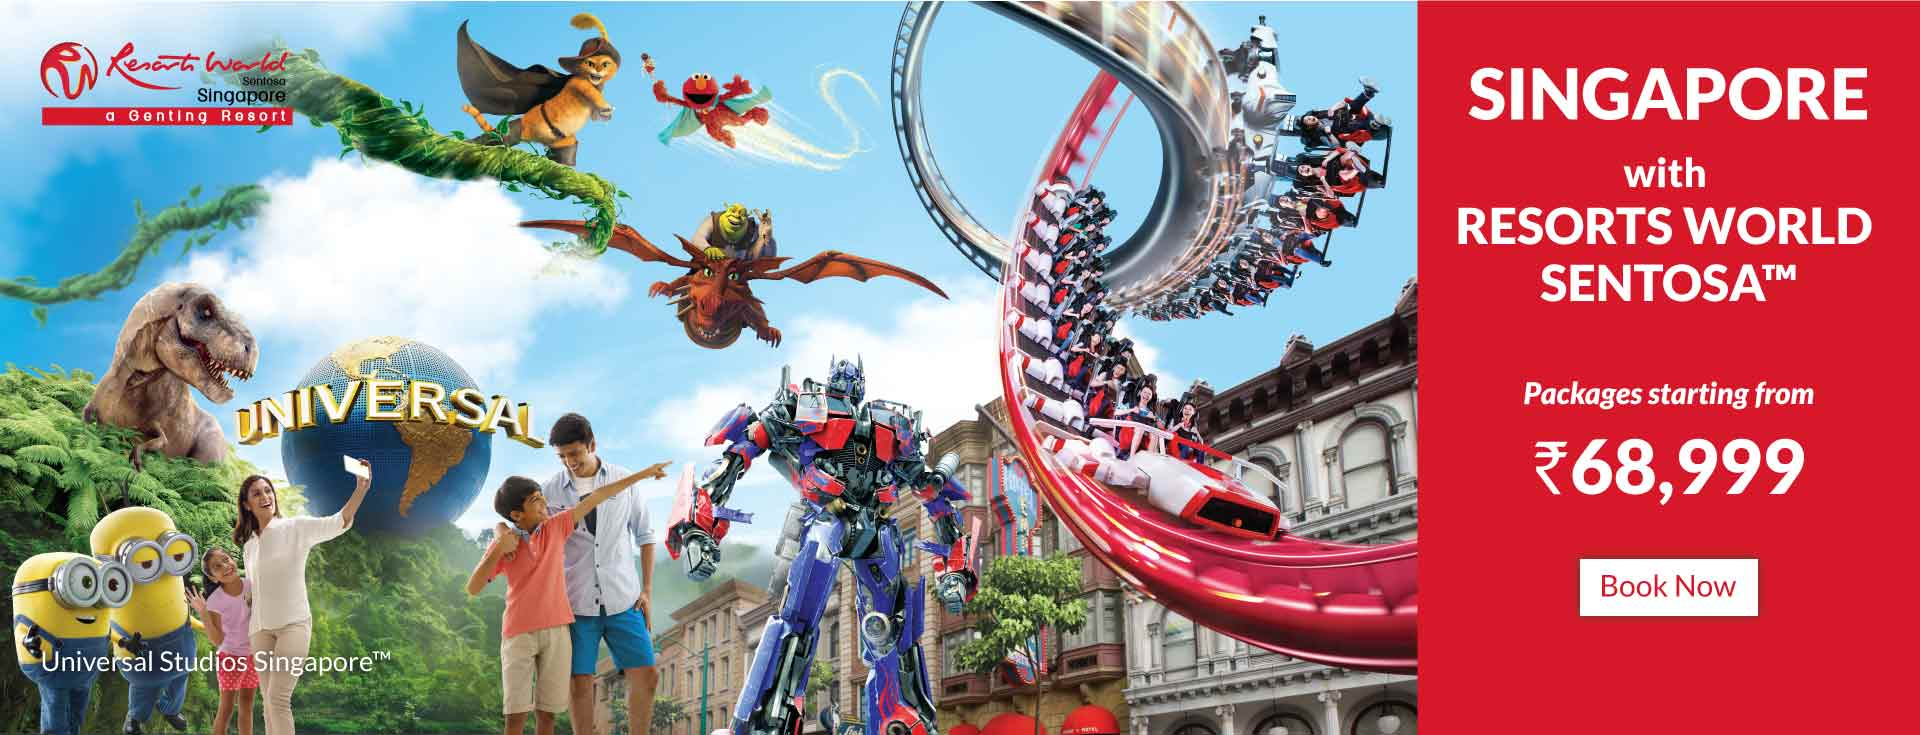 Singapore with  Resort Sentosa Package